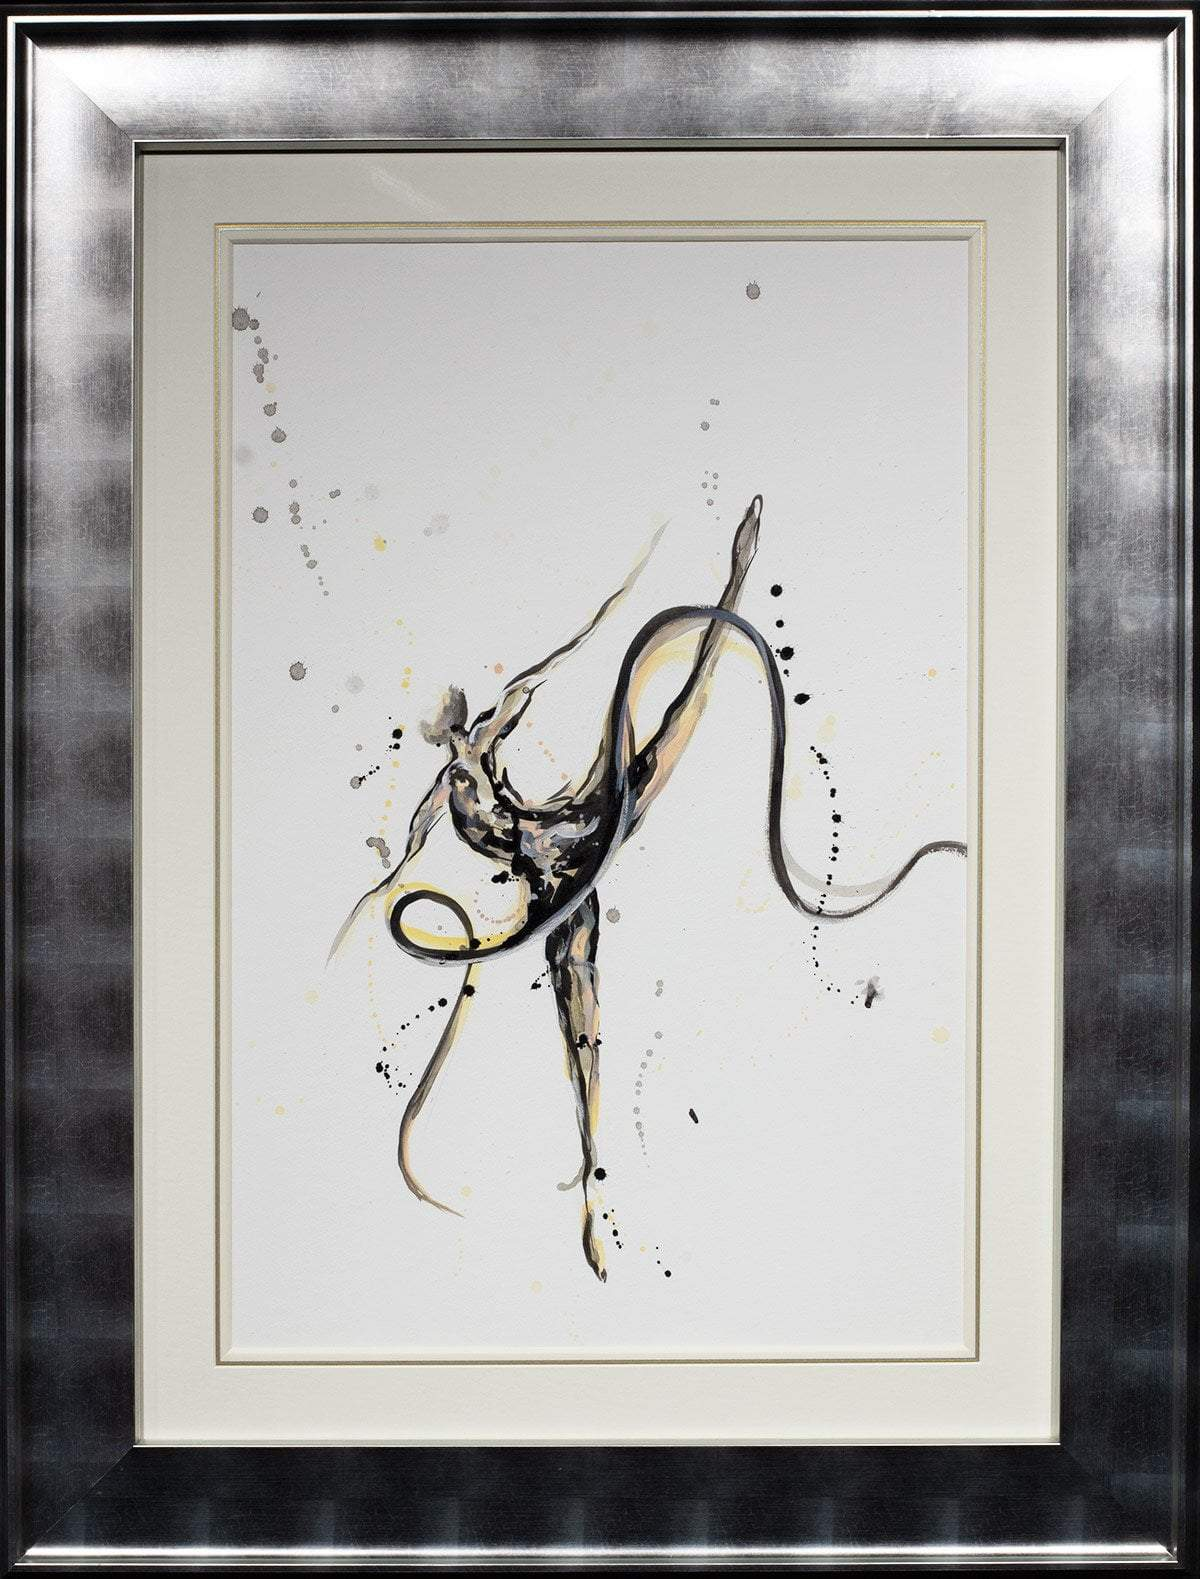 Subtle - Original Laura Beck Framed